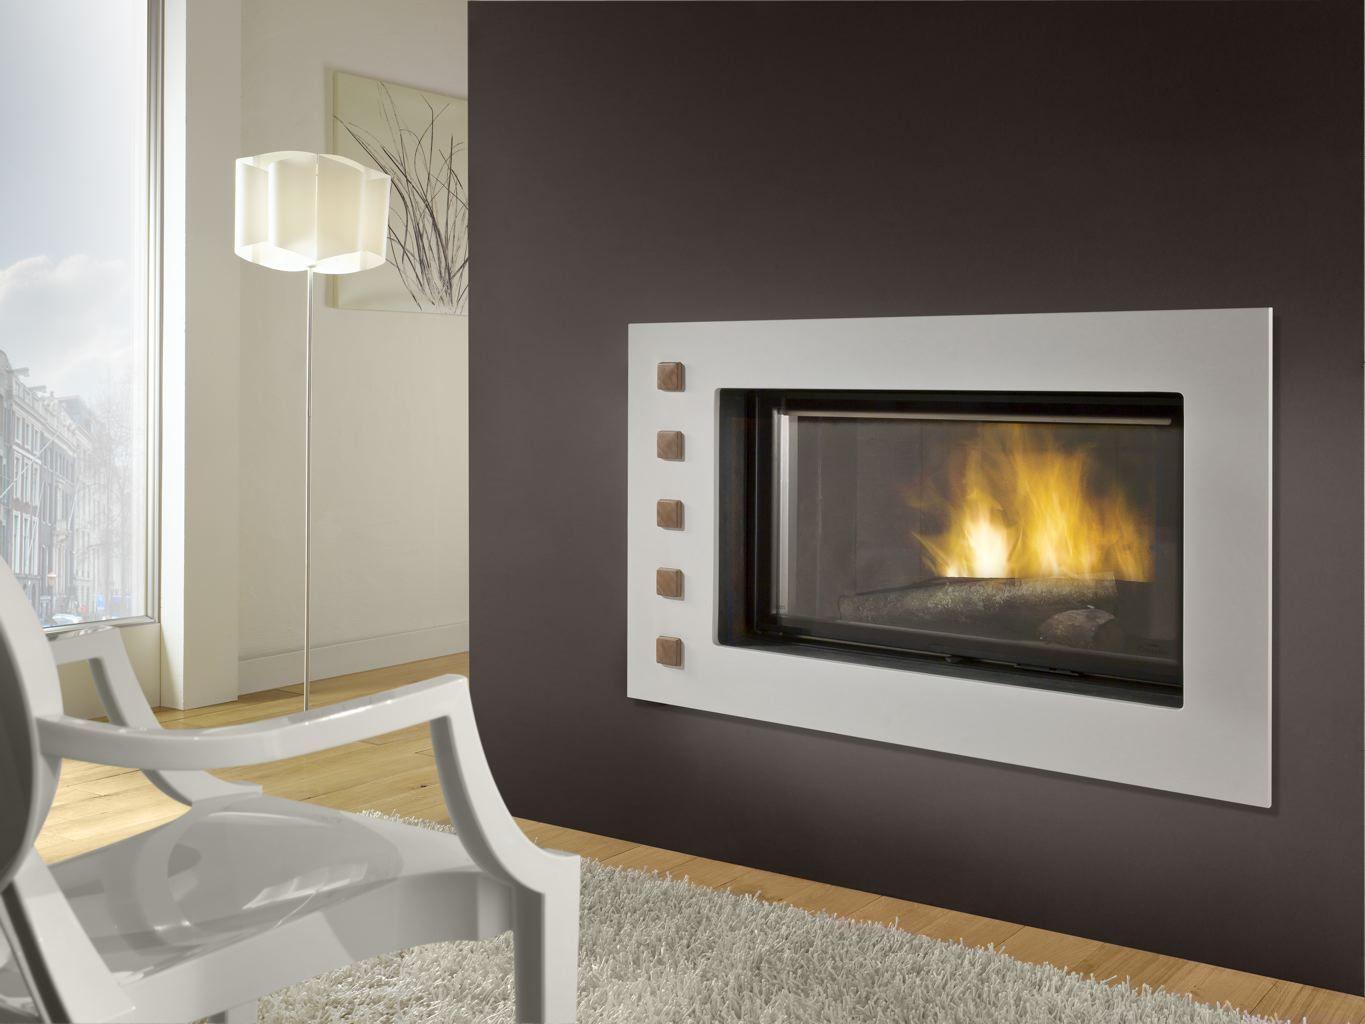 D1350 Fireplace With Dual Opening Door System Cheminees Chazelles